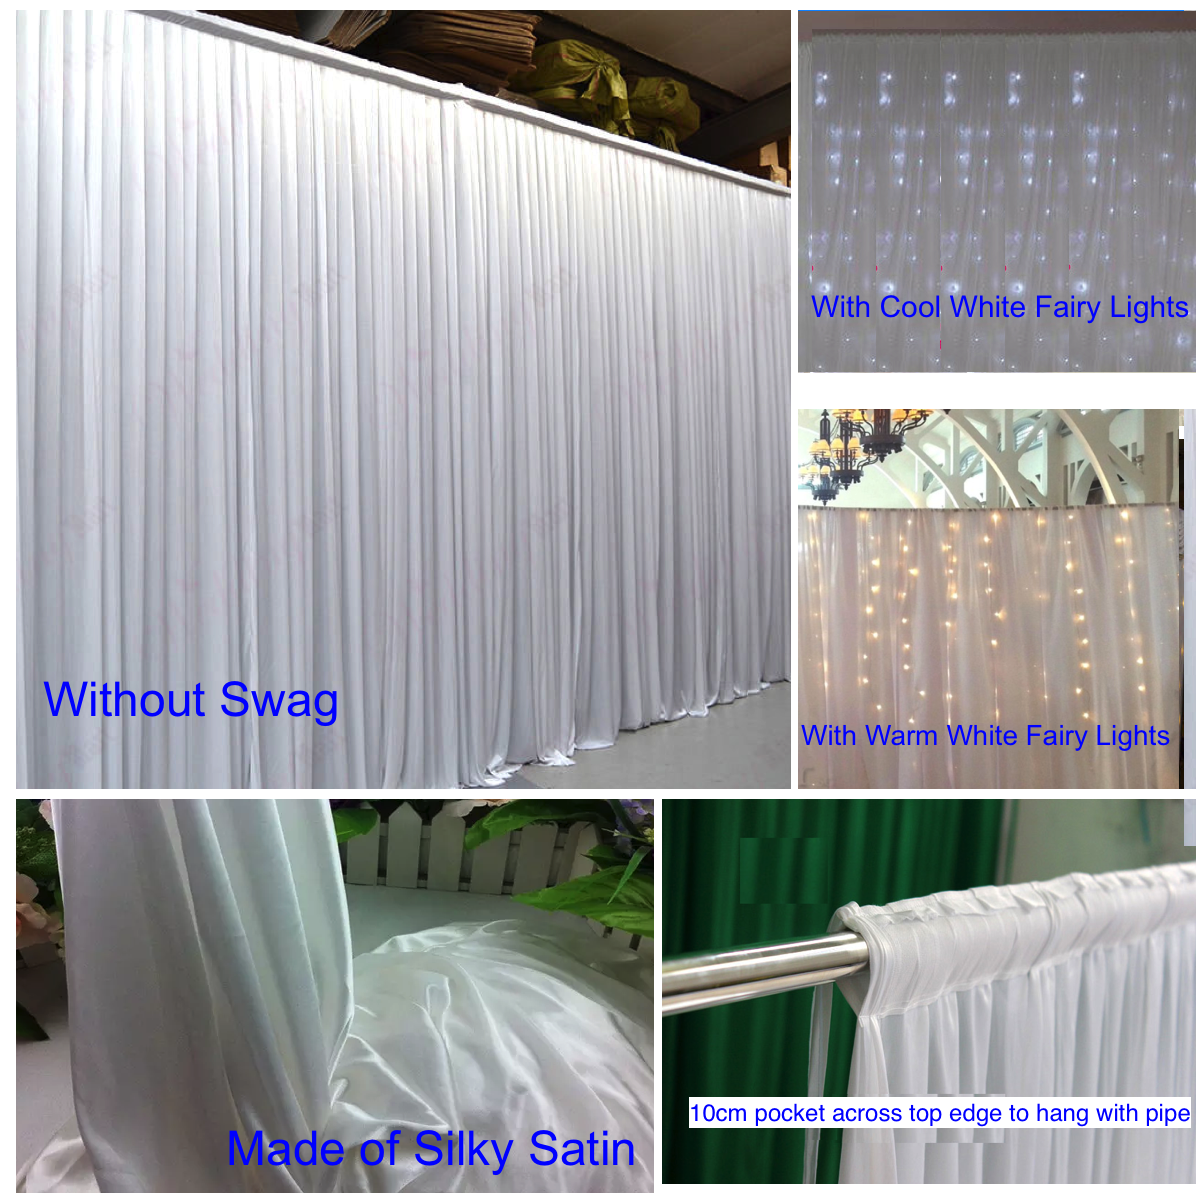 Wedding Party Stage Backdrop Swag Drape Sheer Curtain Photograph Background 189 99 Picclick Au